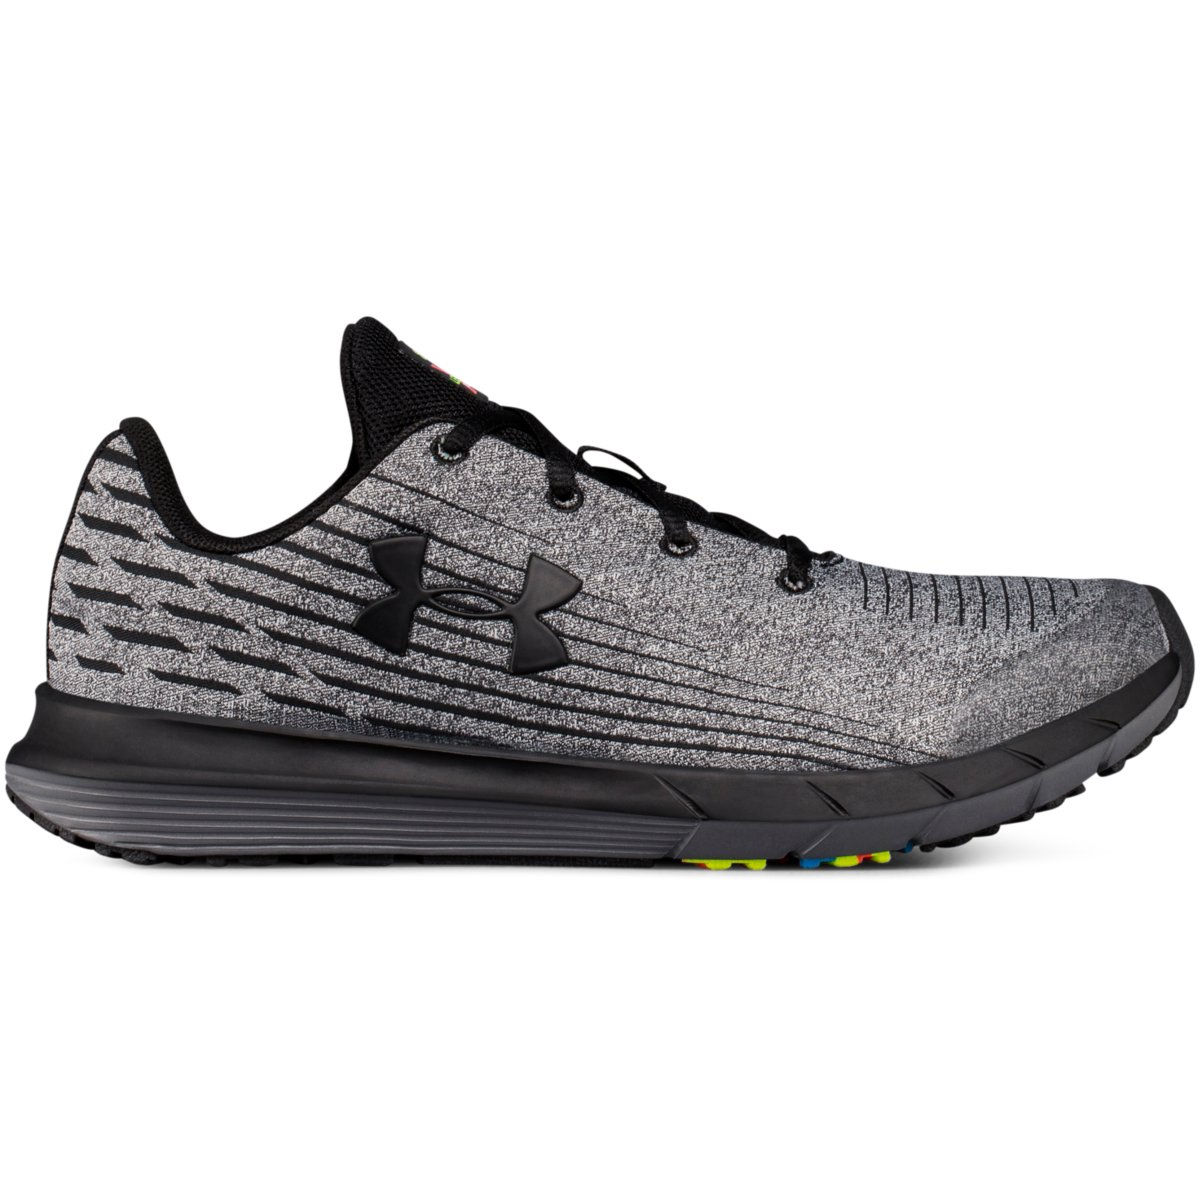 Chaussures de running Garçon Under Armour X Level Blink Plus - 4